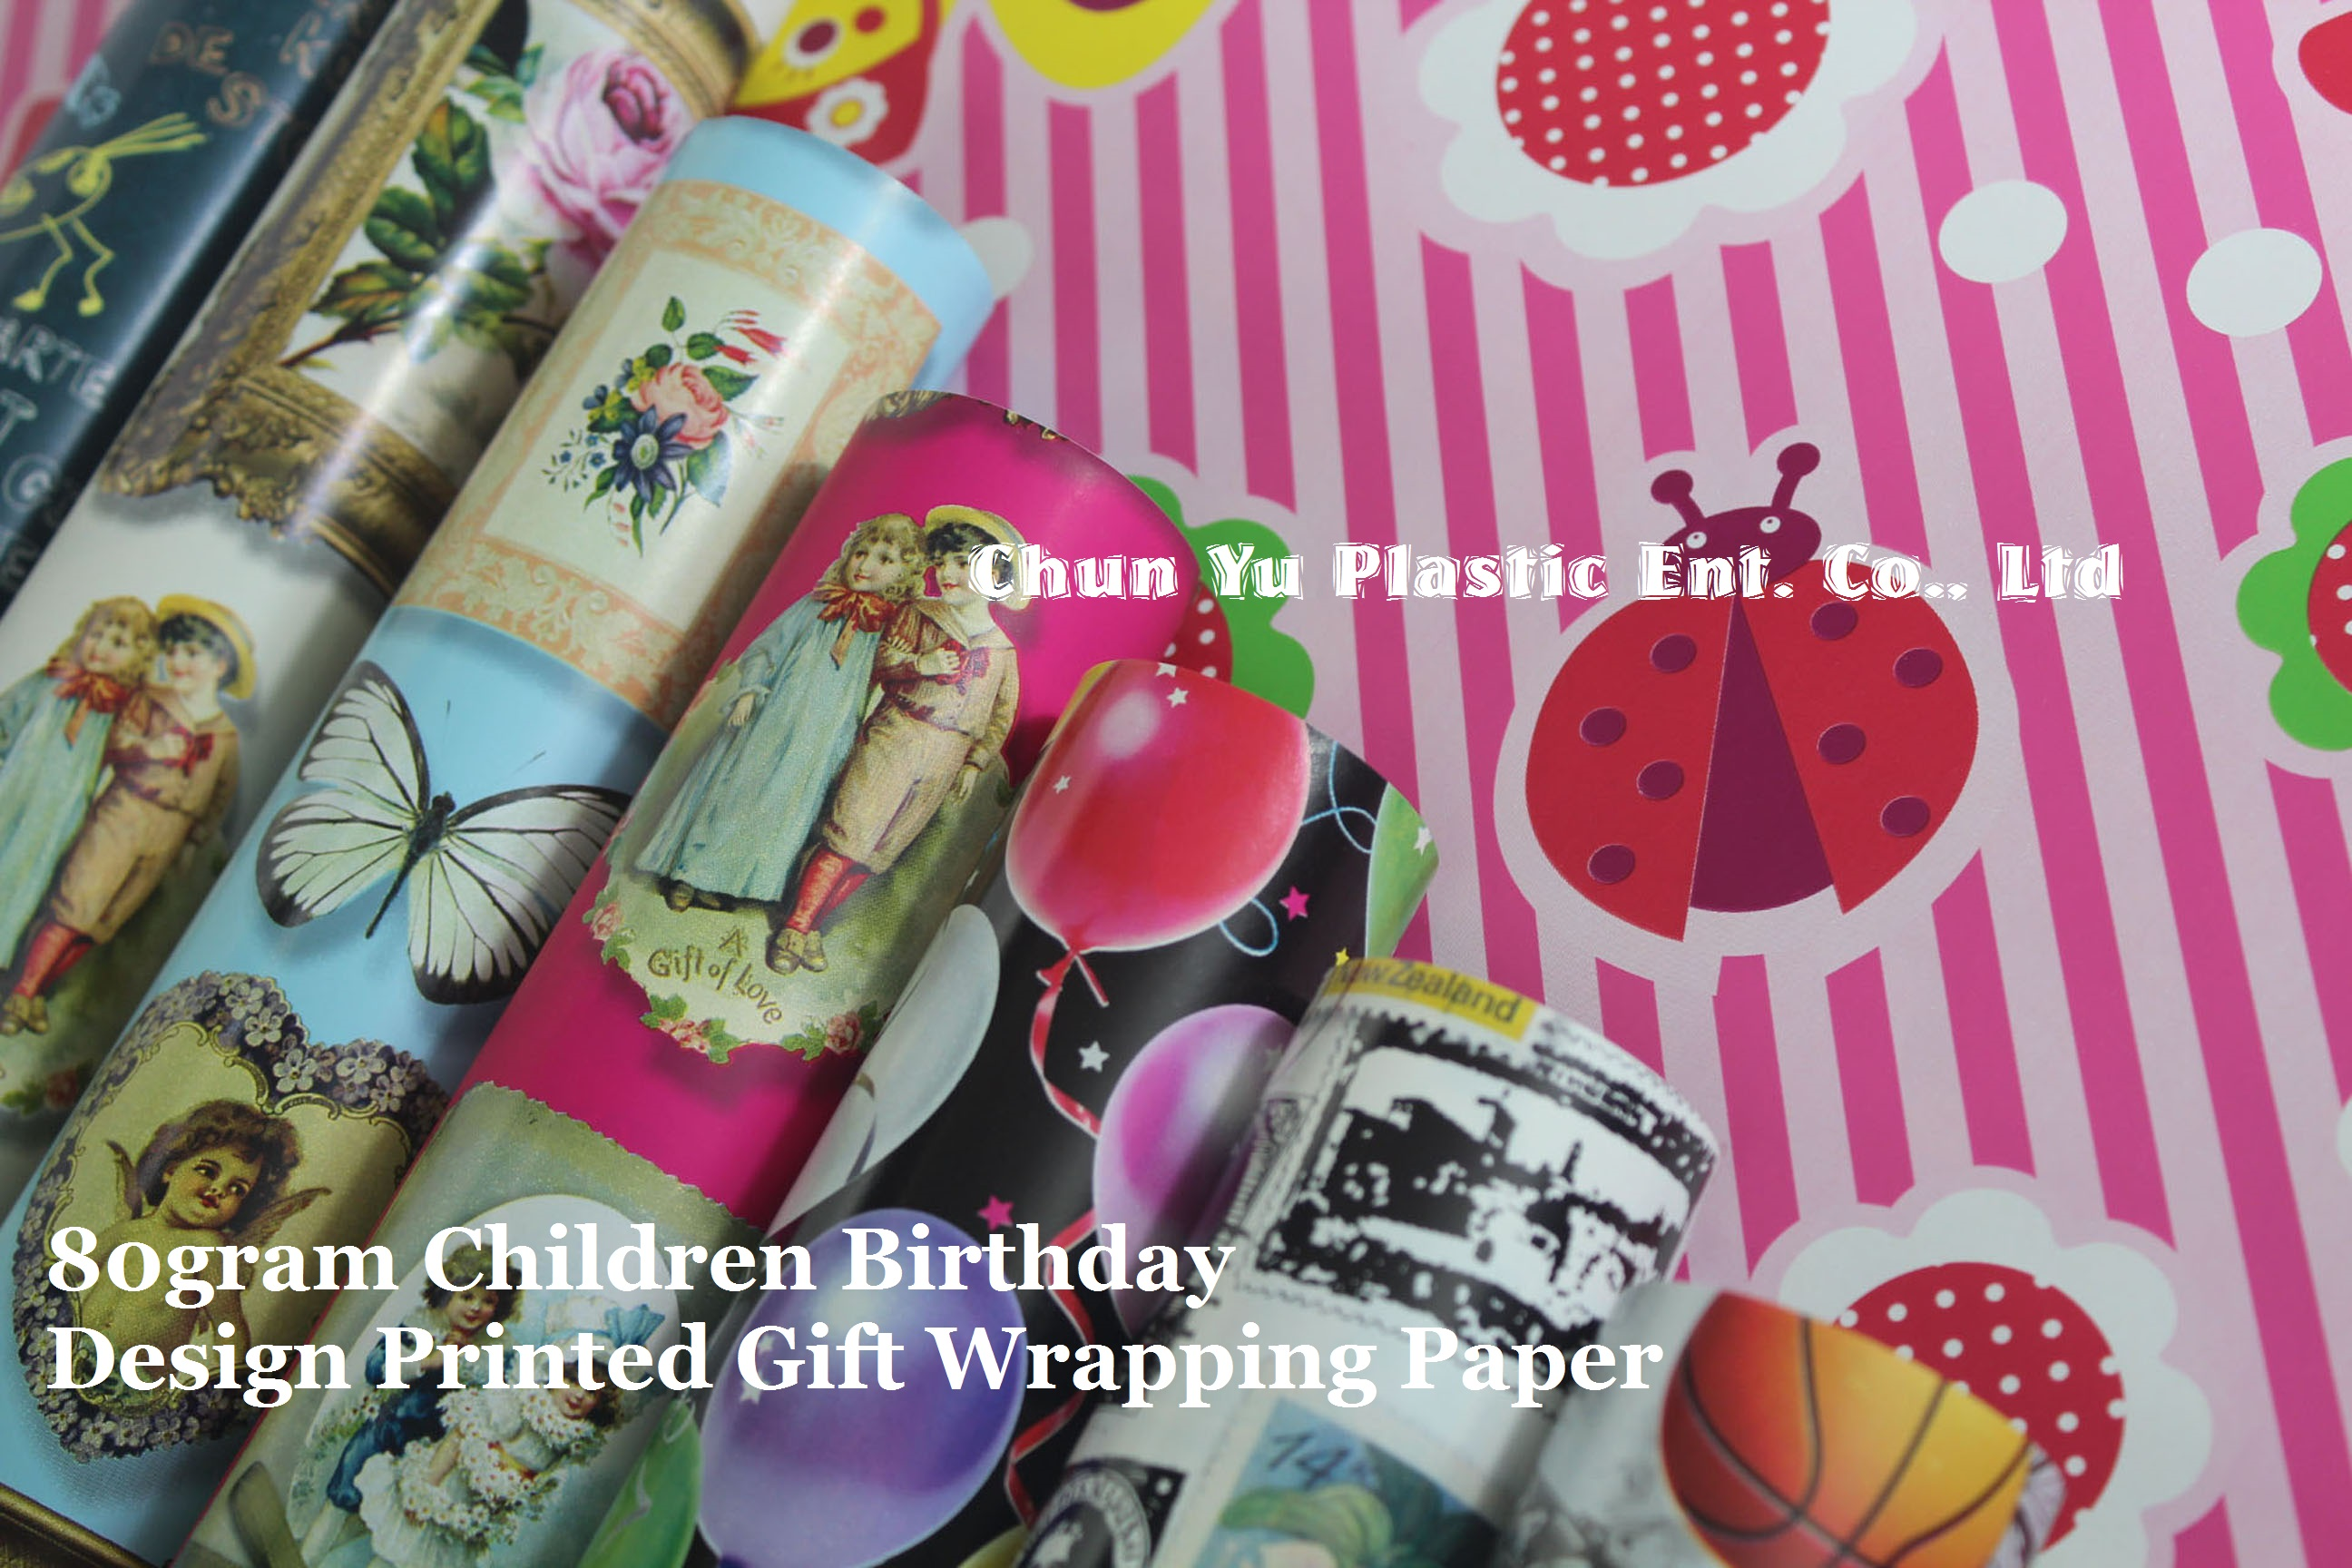 80gram luxury gift wrapping paper printed with baby girls and boys designs for children birthday celebrations